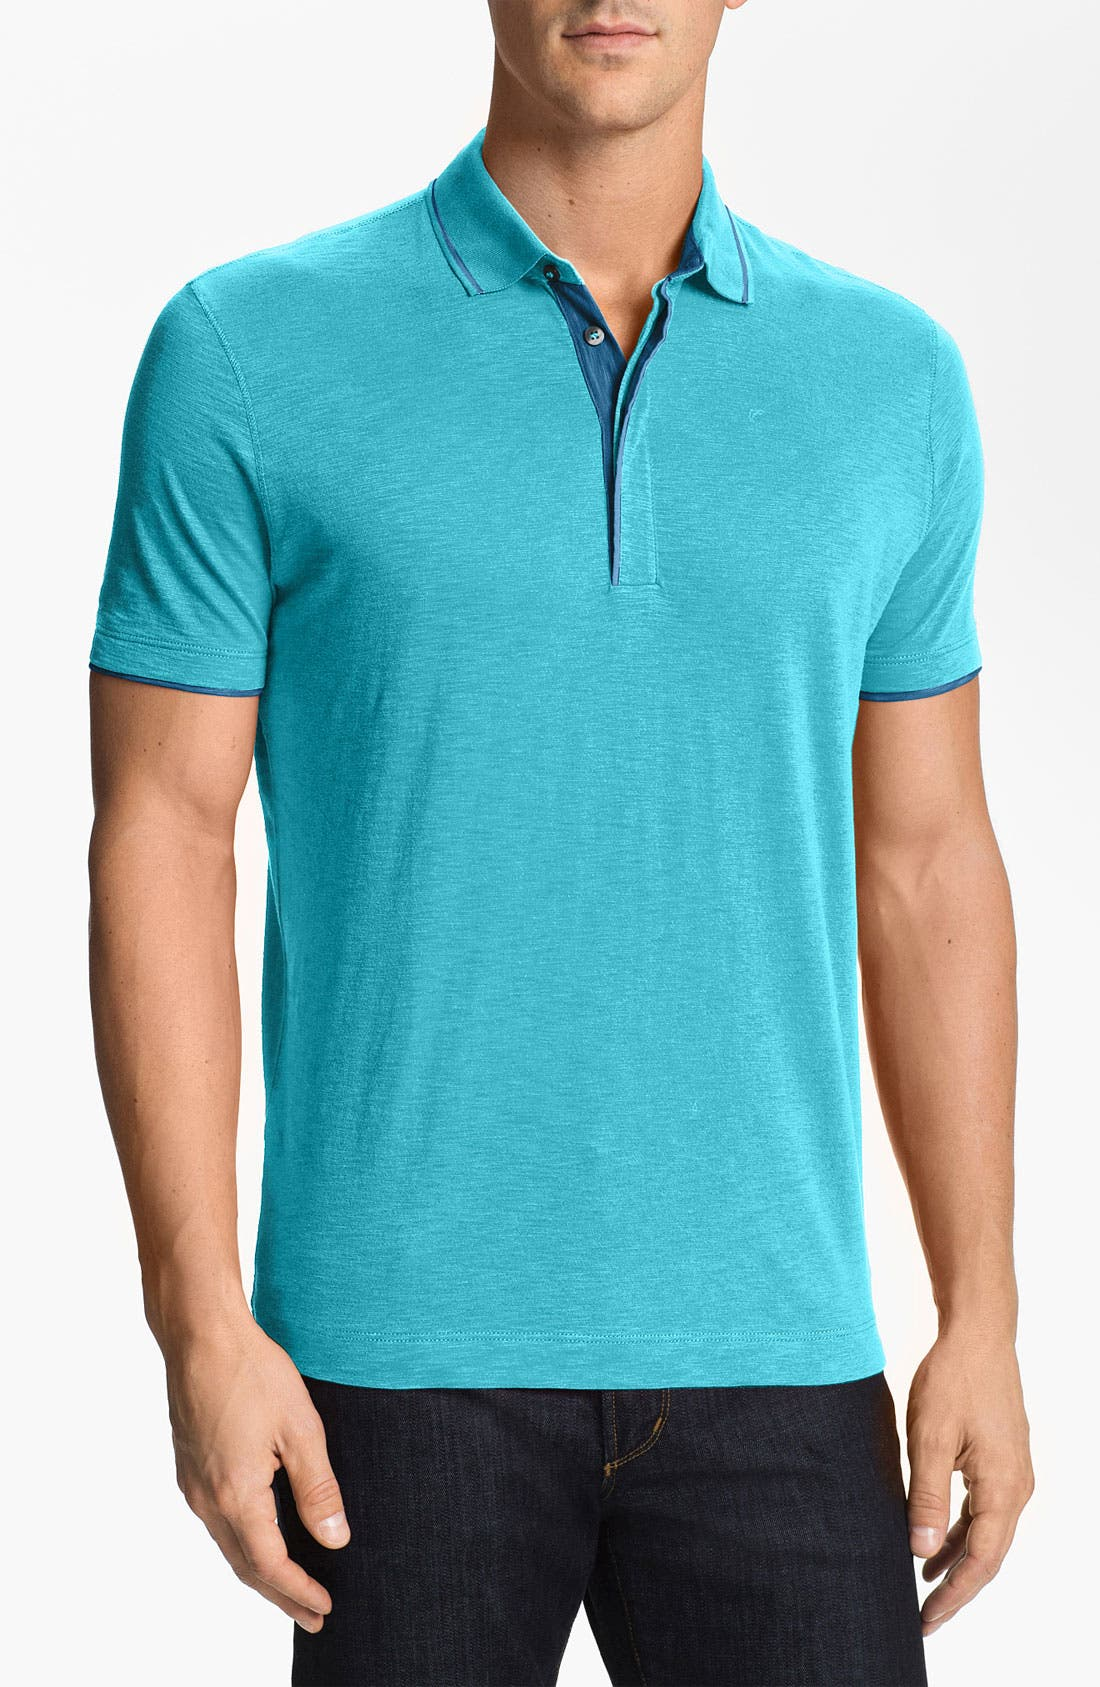 Alternate Image 1 Selected - BOSS HUGO BOSS 'Bugnara 14' Regular Fit Polo